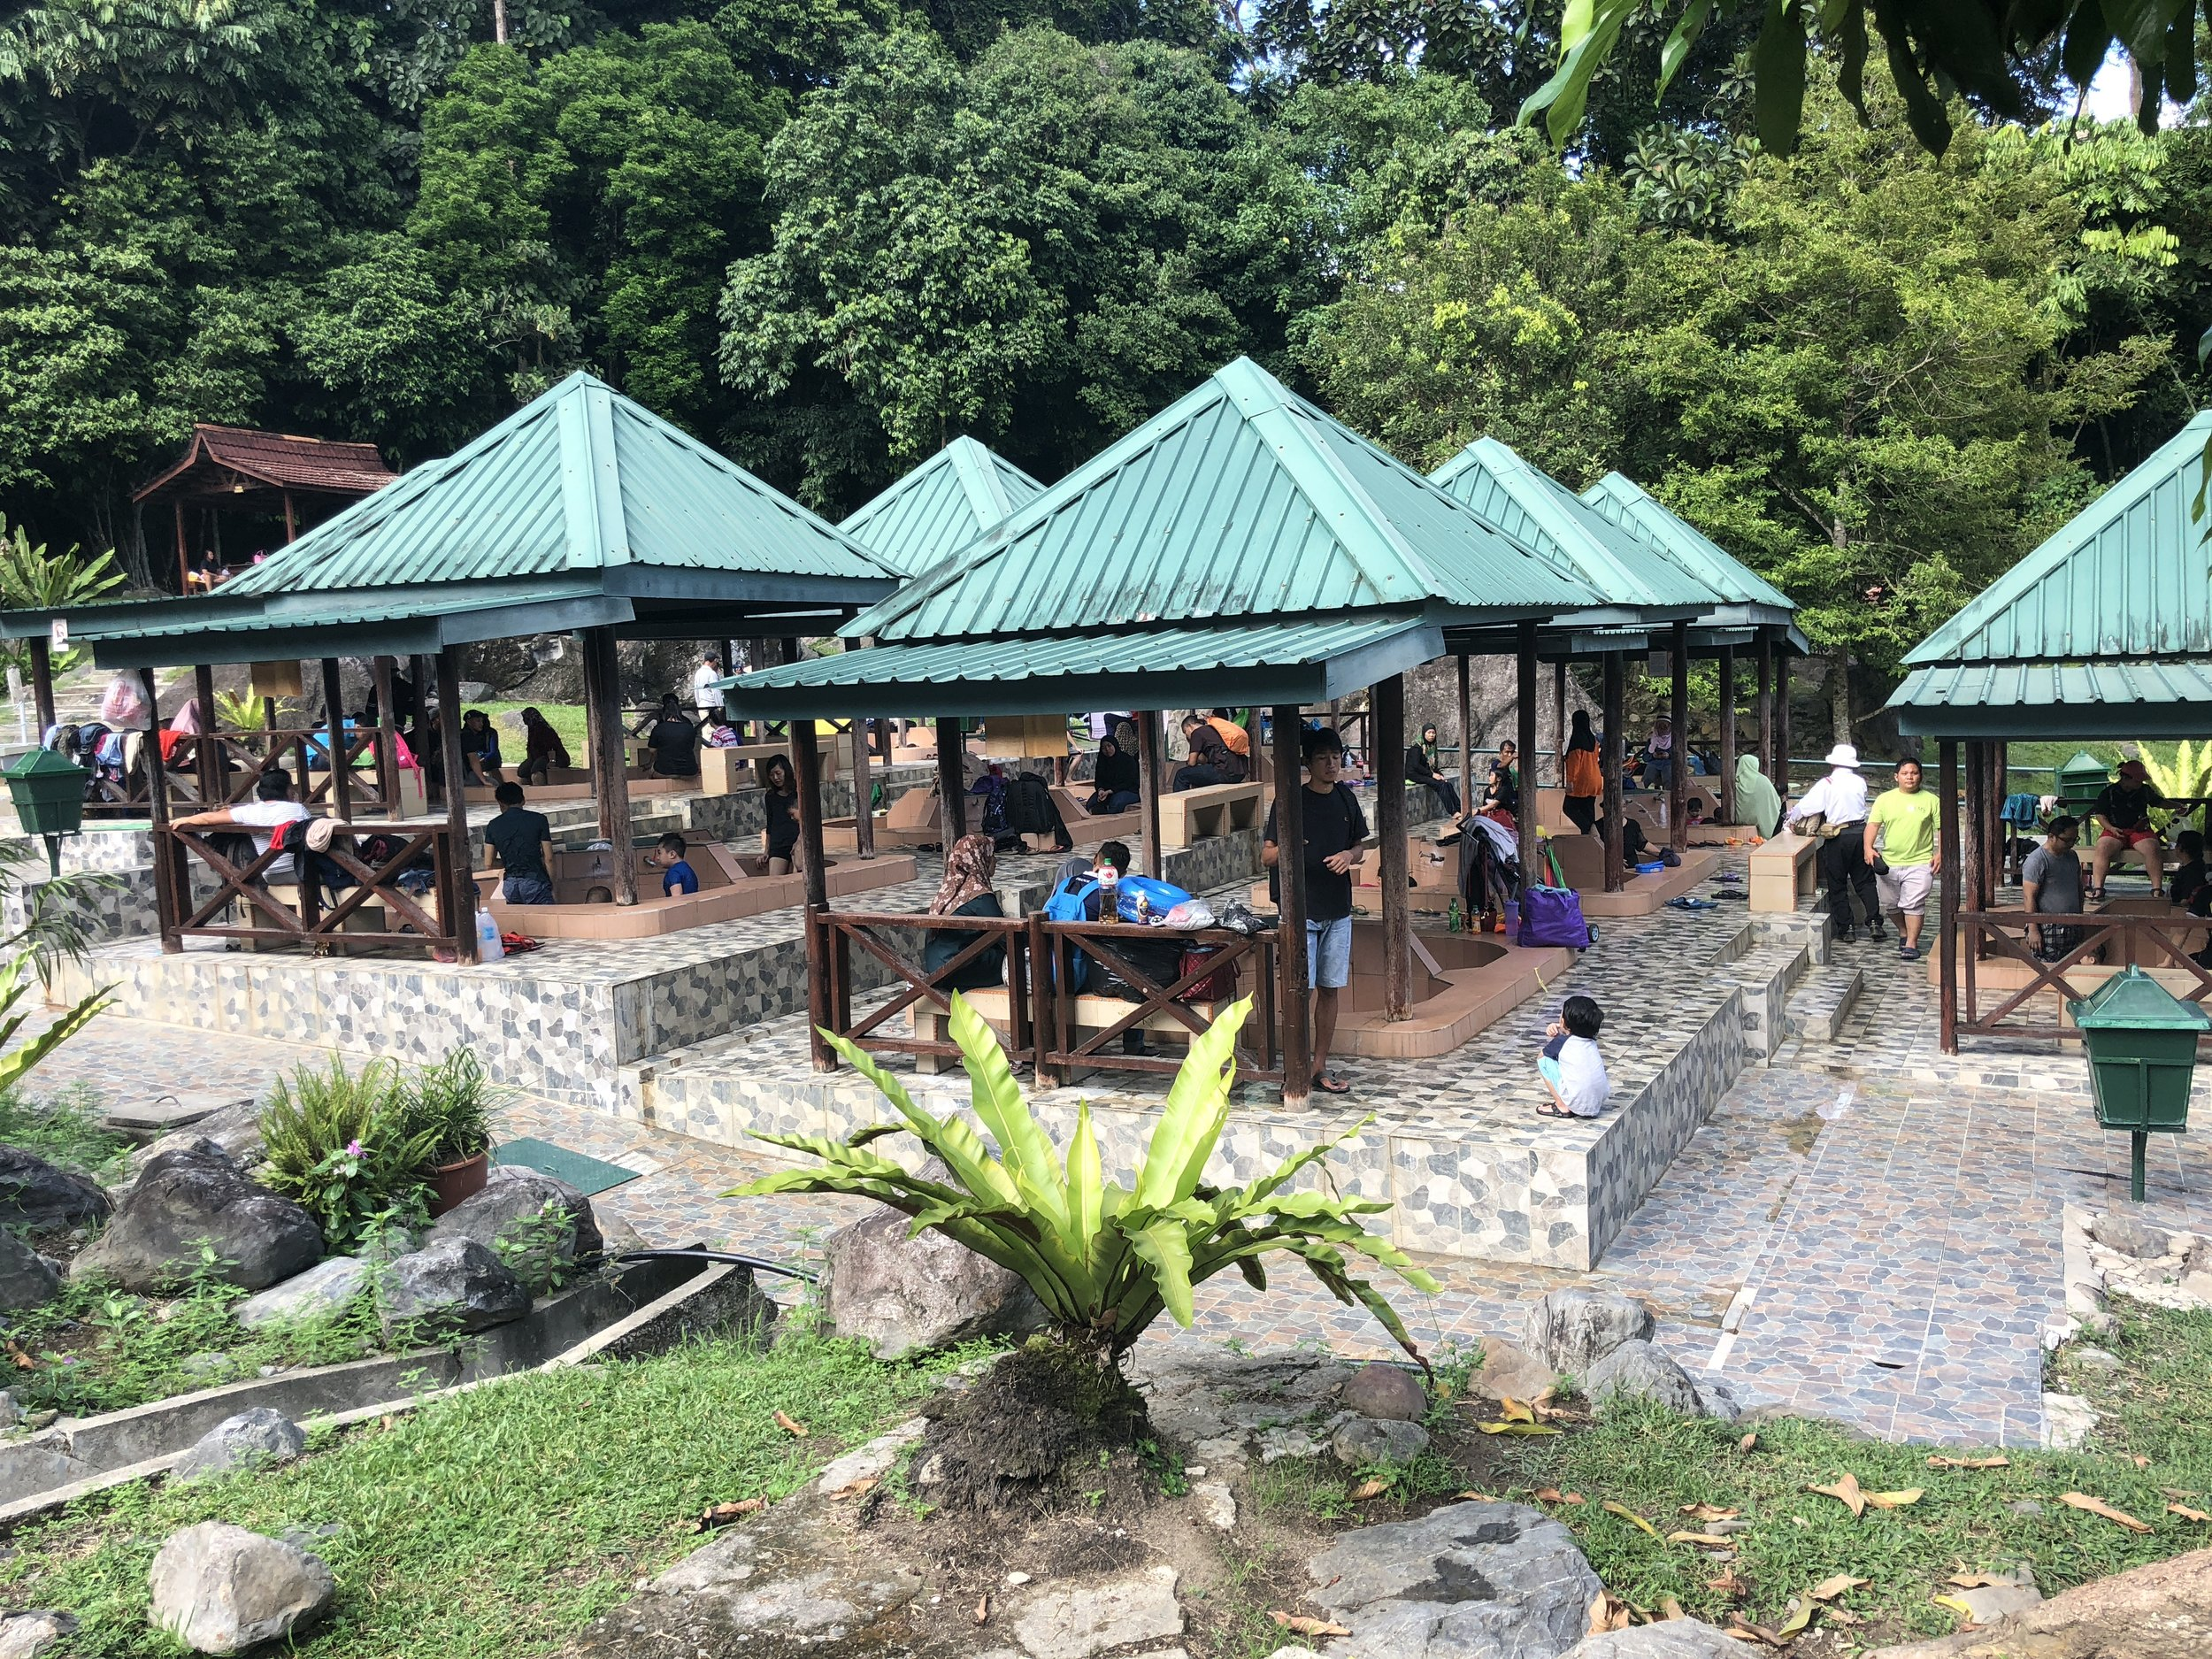 Enjoy a dip at Poring Hot Spring located in Kinabalu National Park